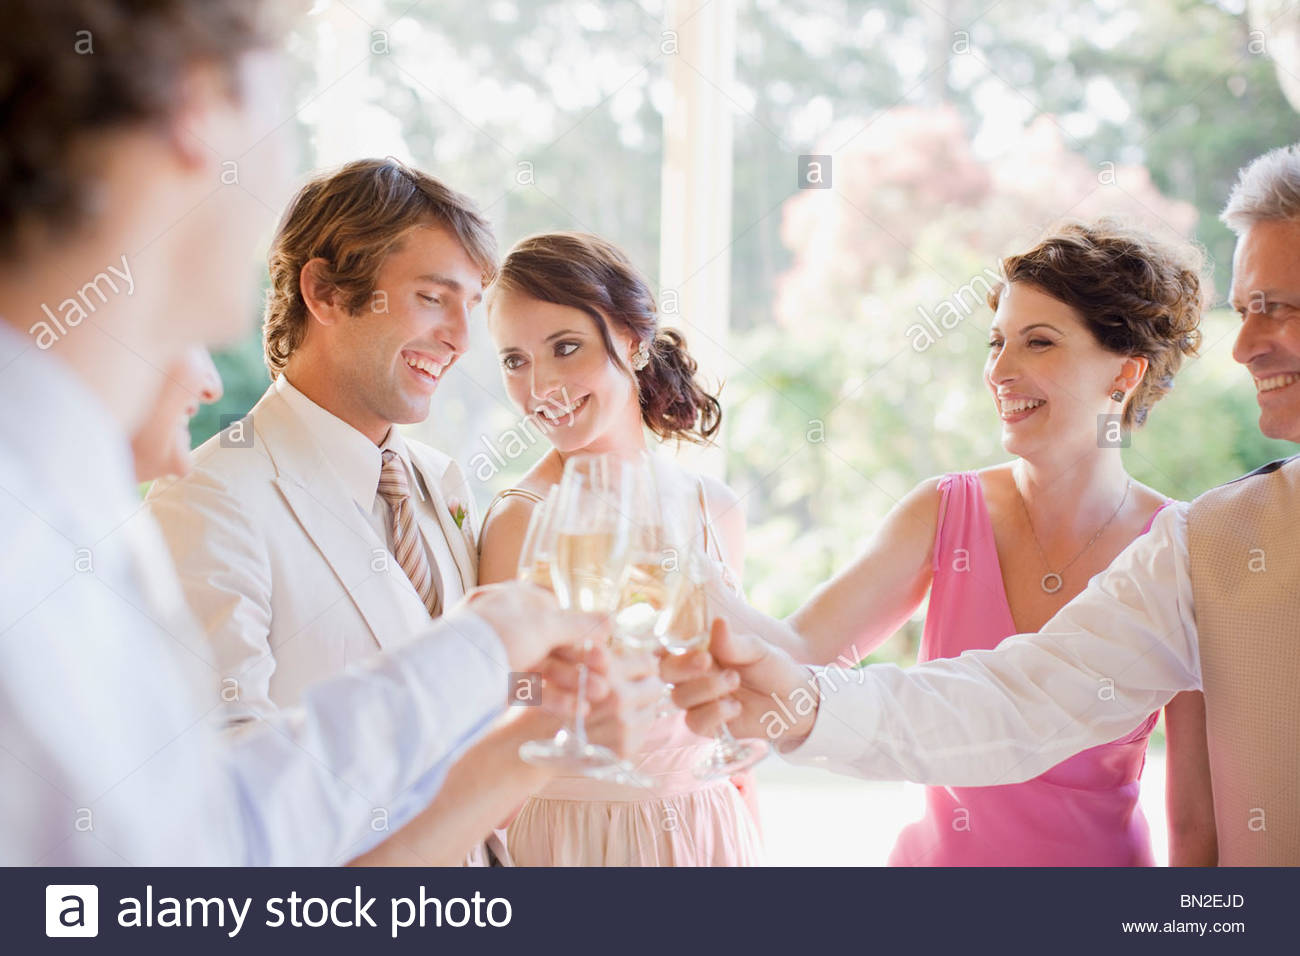 Guests toasting with champagne at wedding reception - Stock Image